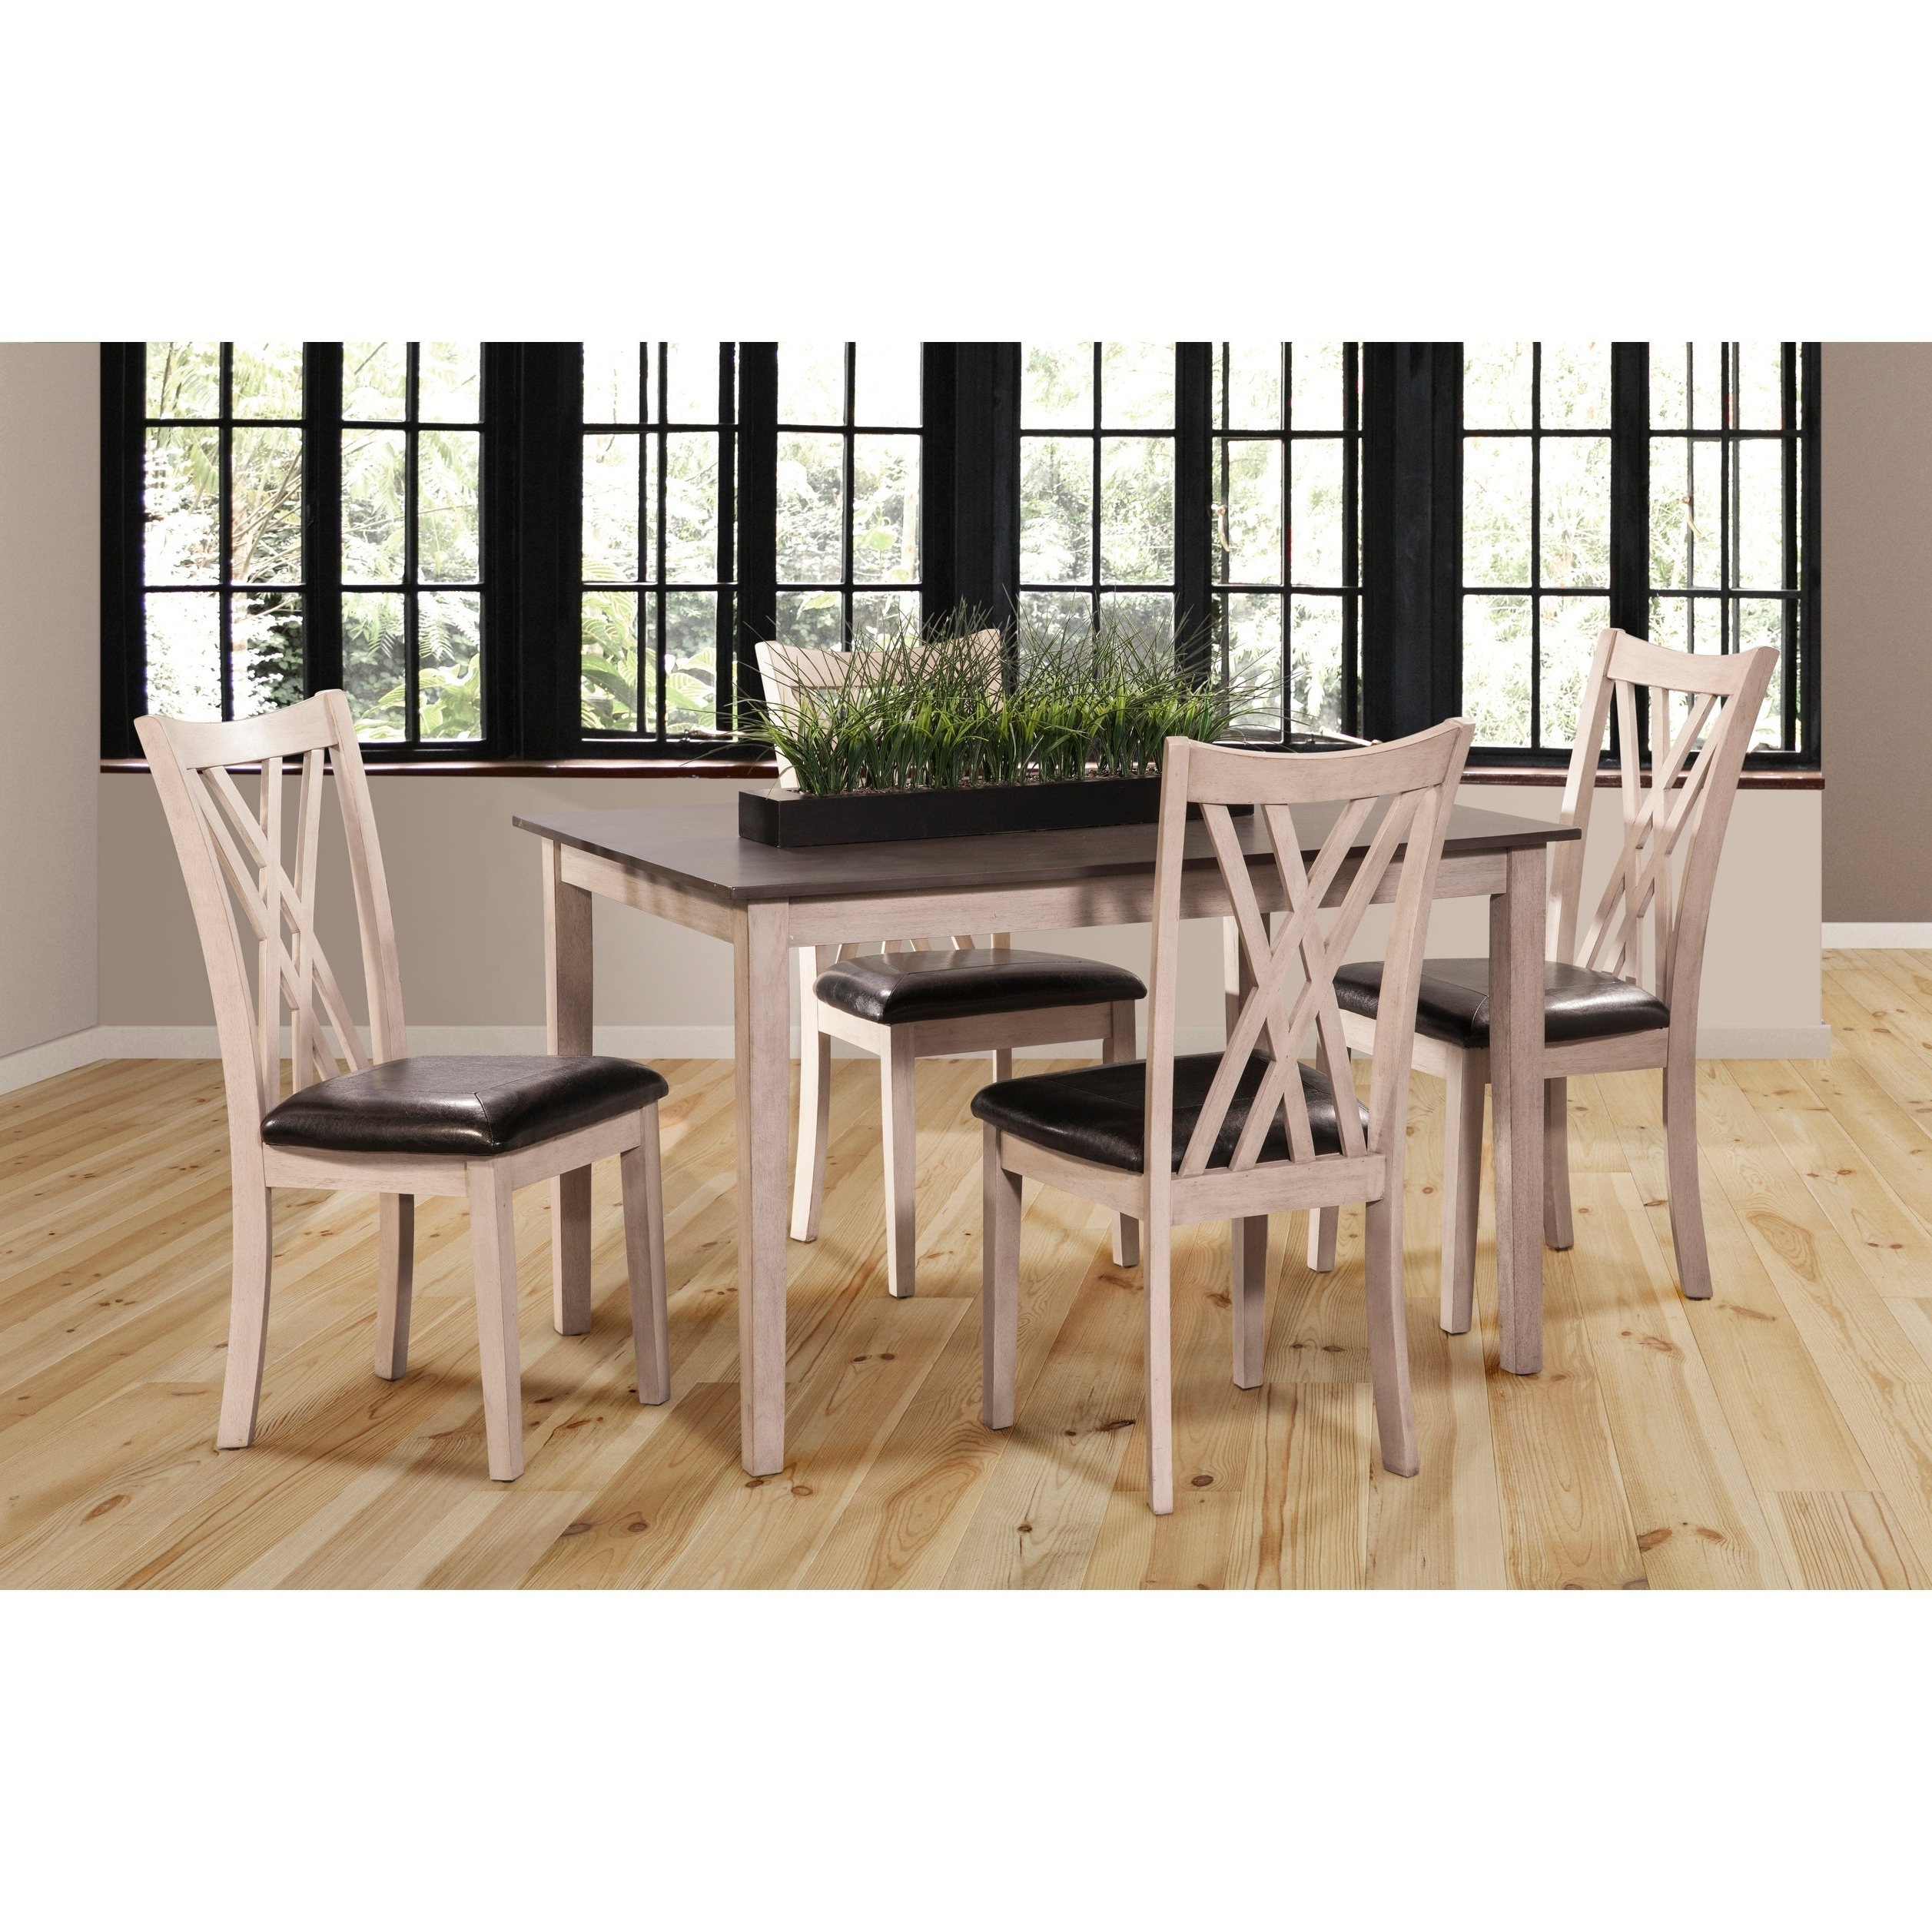 Famous Bryson 5 Piece Dining Sets Intended For Paige Creme And Brown 5 Piece Dining Table Set (Gallery 15 of 20)